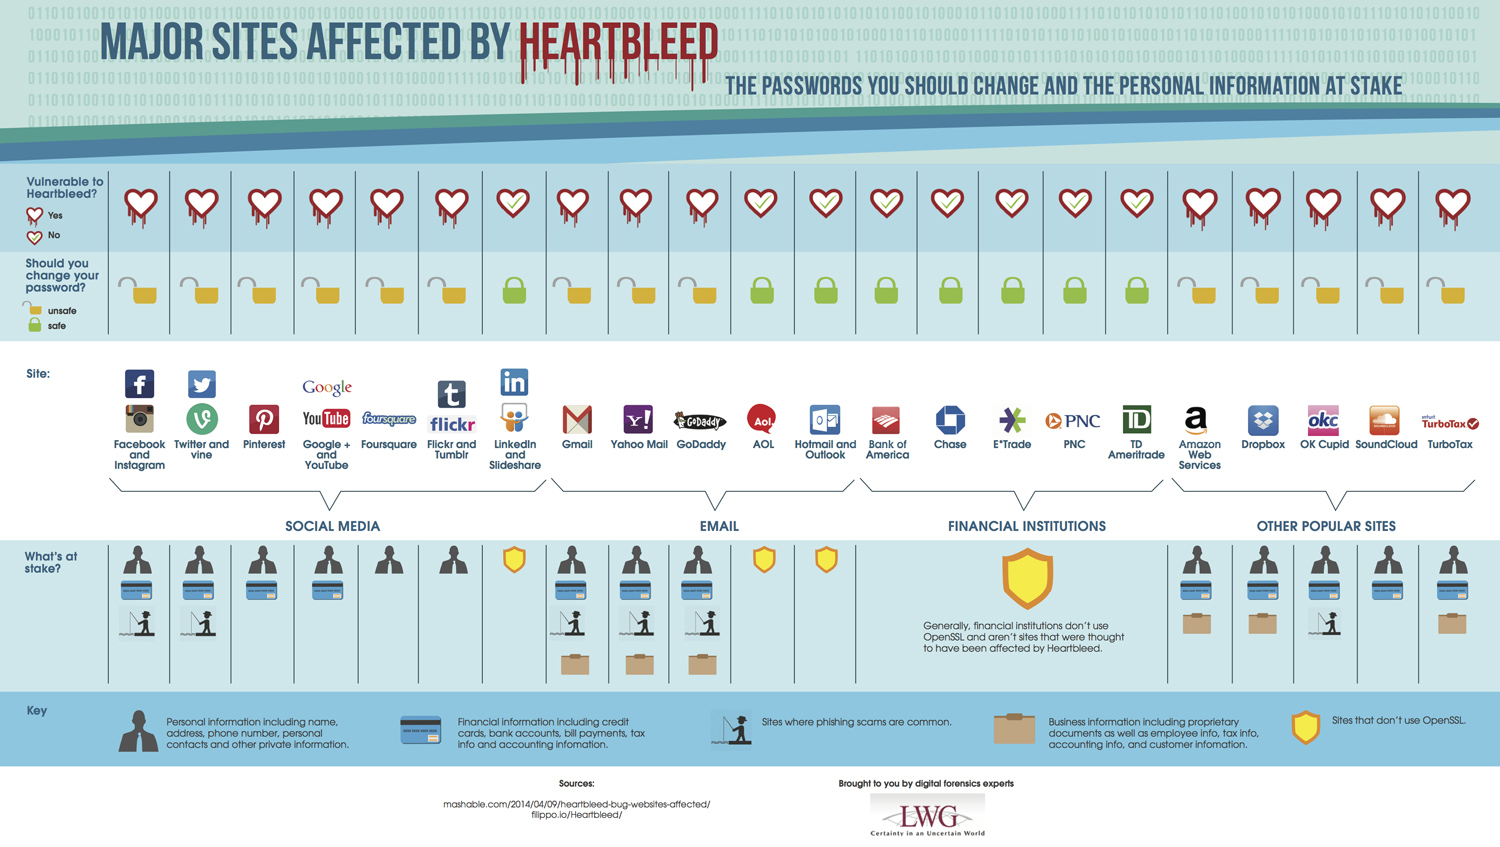 lwg_heartbleed_passwords